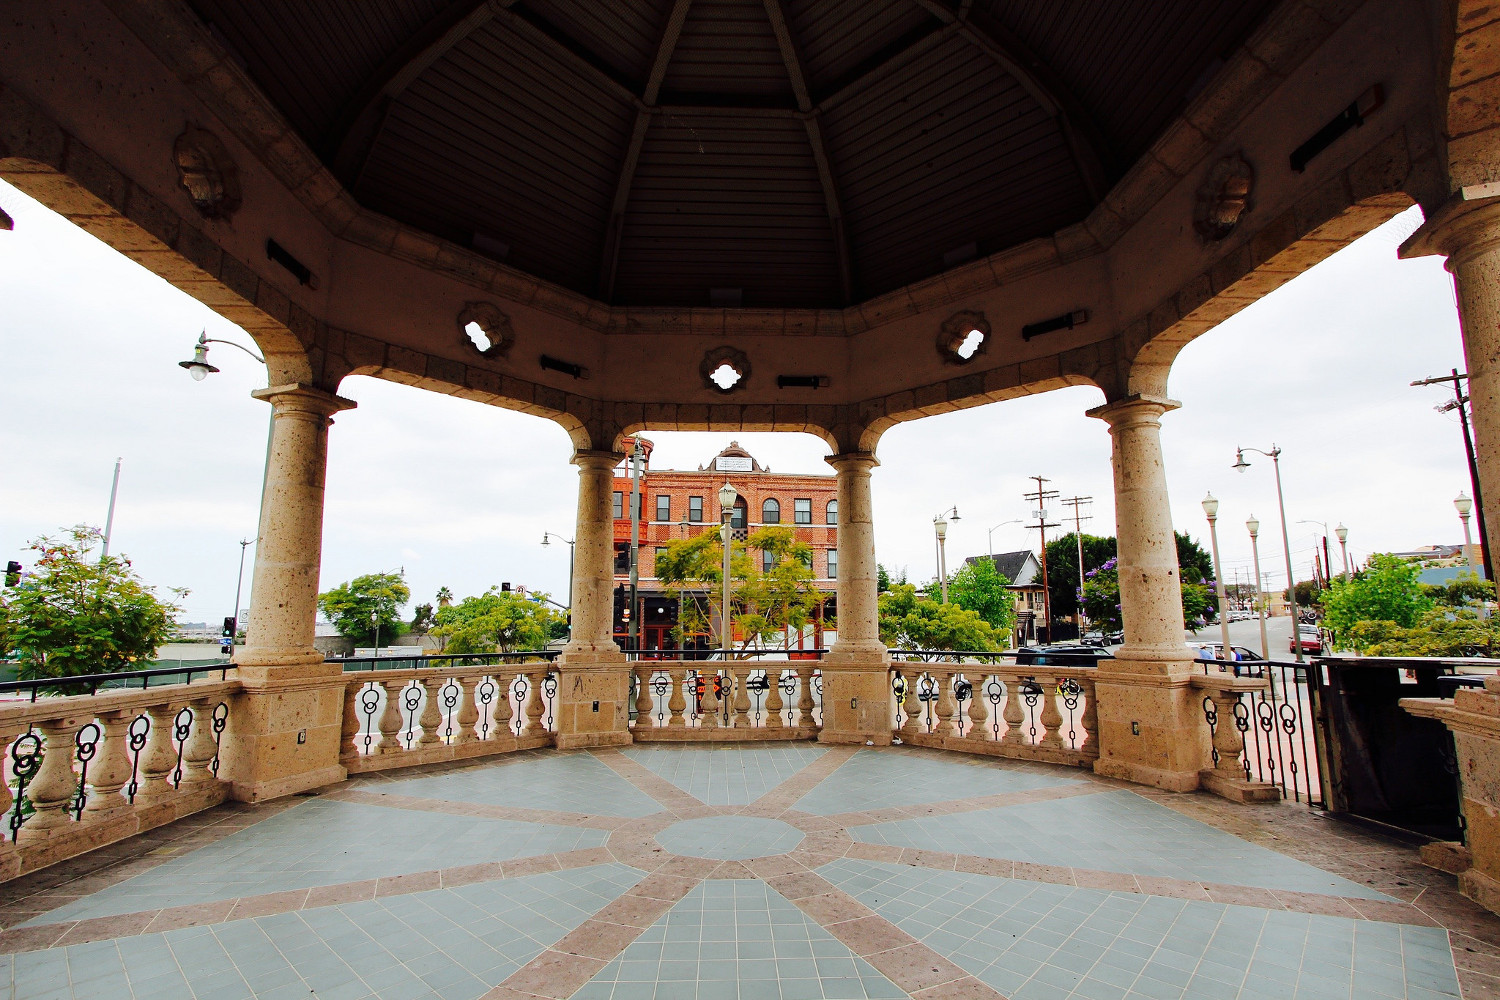 Mariachi Plaza kiosk in Boyle Heights